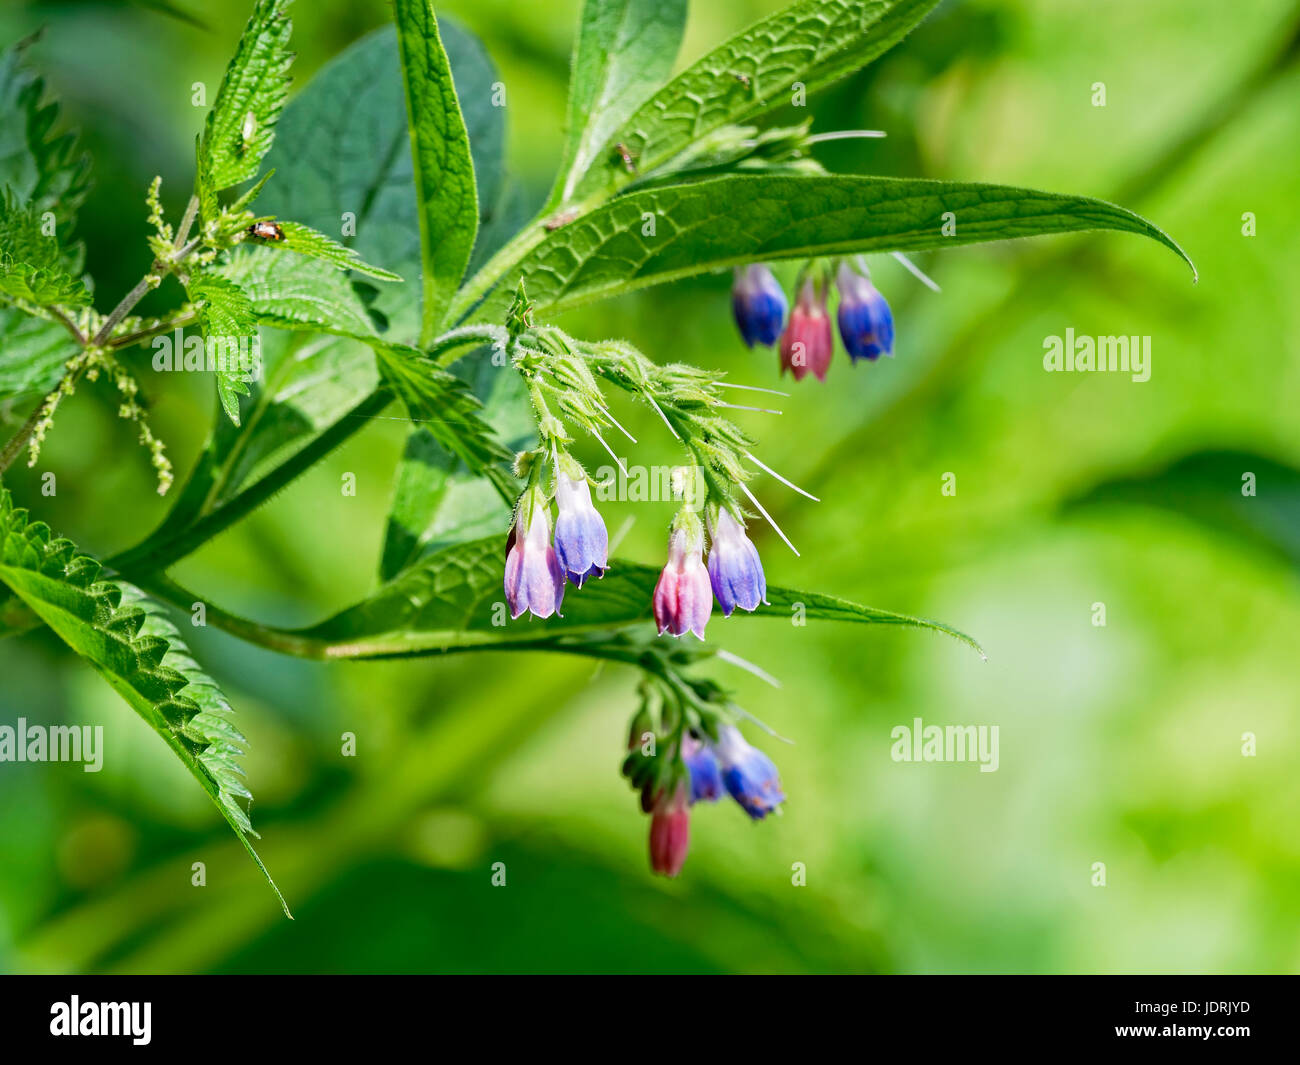 Close up of pink and blue Spanish Bluebell wildflowes growing on a plant. - Stock Image